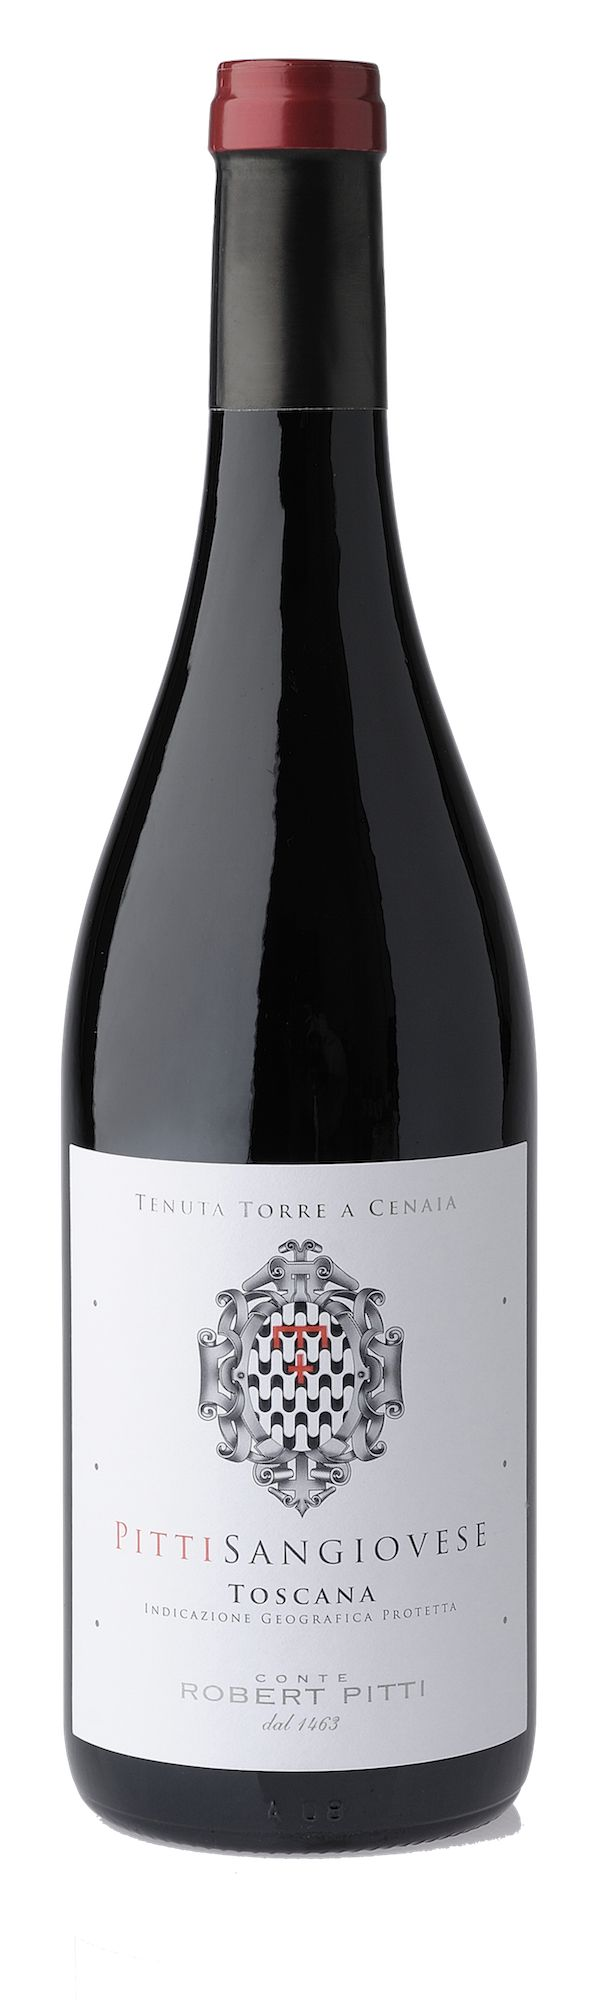 PITTI SANGIOVESE  A rigorous selection of grapes and a scrupulous vinification gives to this Sangiovese a ruby red colour and an harmonious and velvety taste with elegant tannins. Ideal as an aperitif, it pairs perfectly with roasted, grilled, red meats, fish.